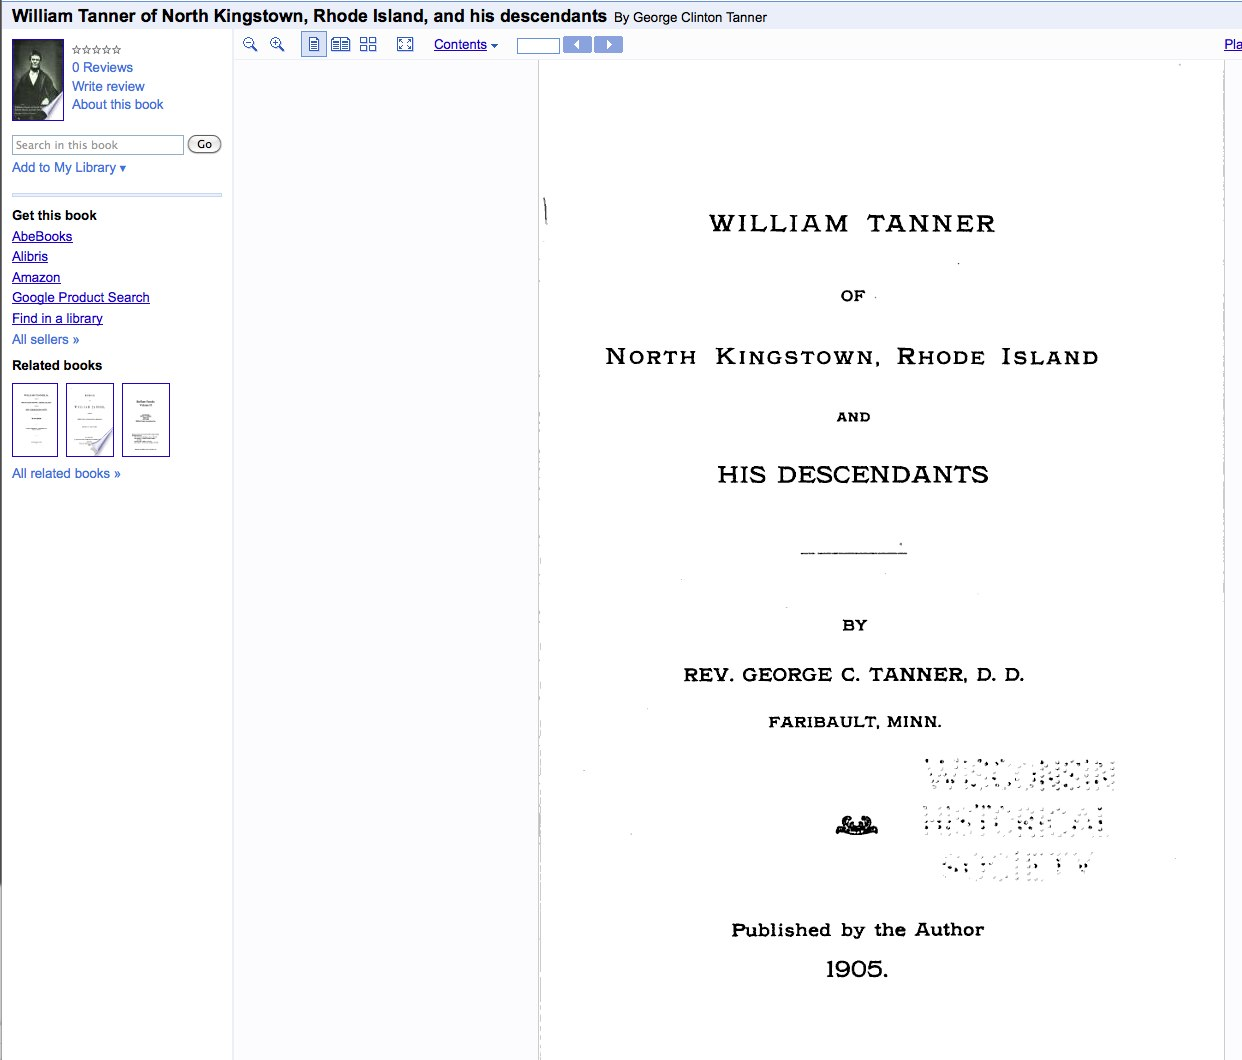 Google Books Has The Entire Book Digitized In Full View The Citation To The  Book Is